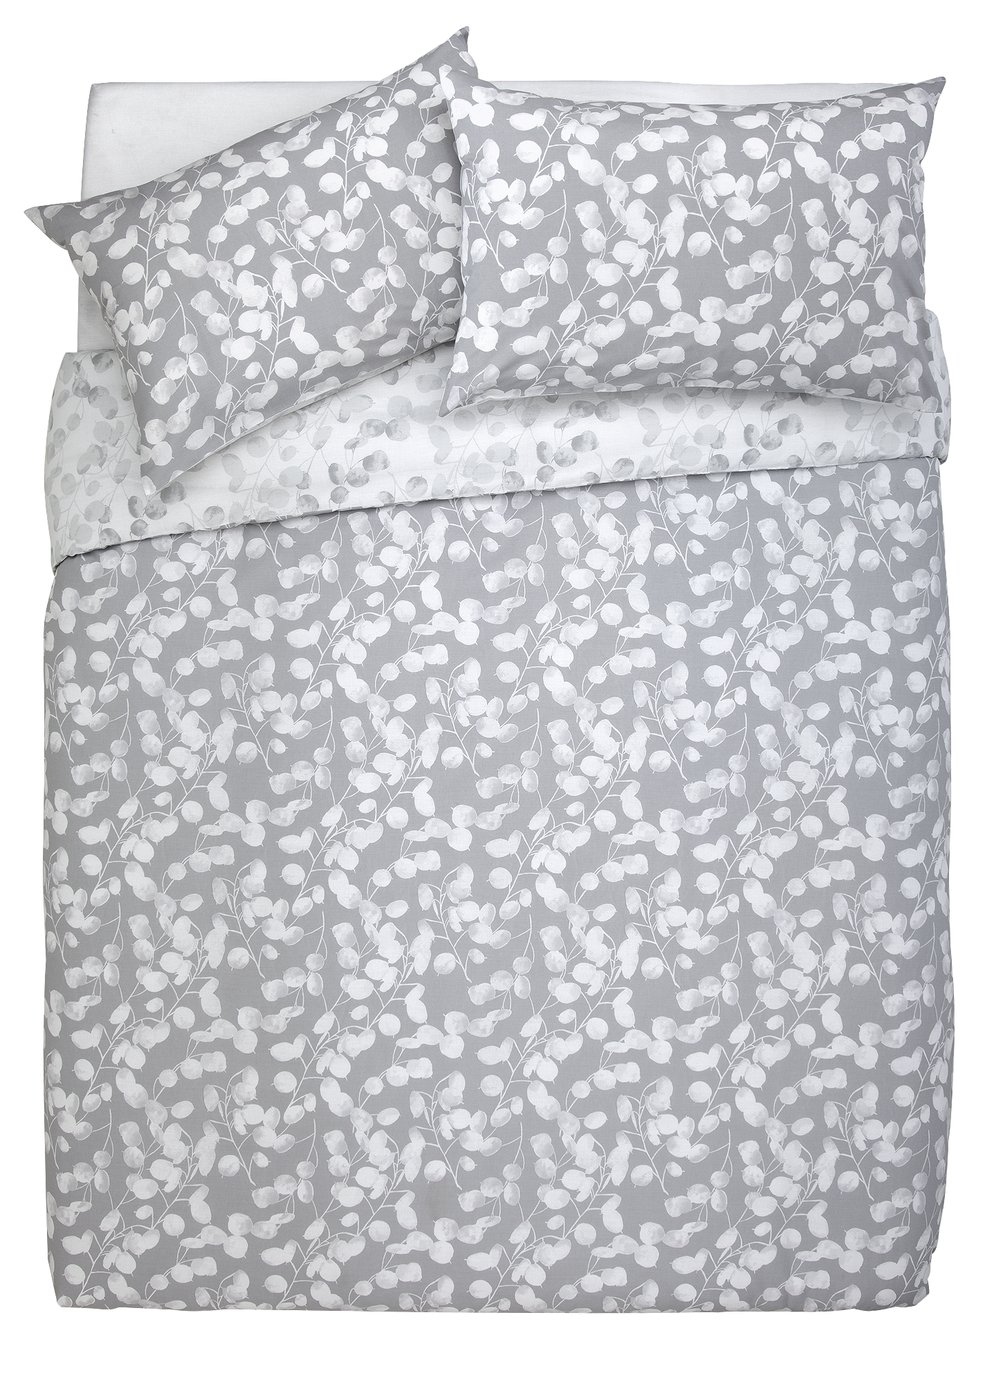 Argos Home Grey Honesty Bedding Set - Kingsize